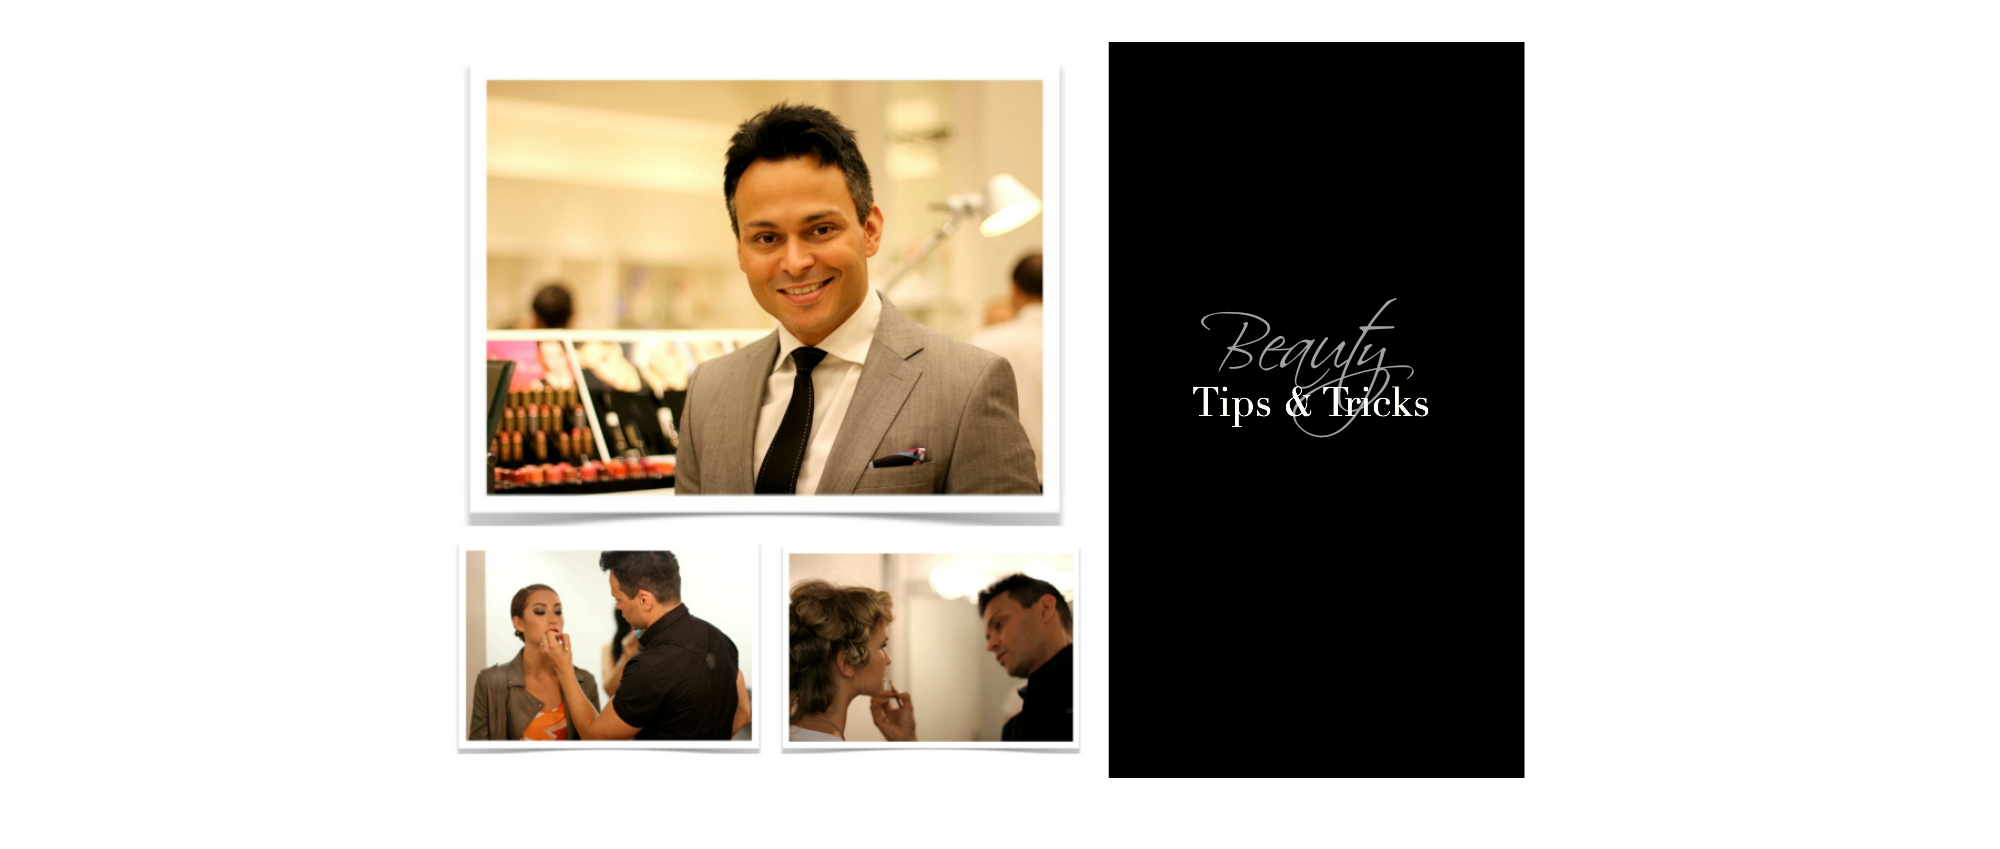 Tips To Put Your Best Face Forward